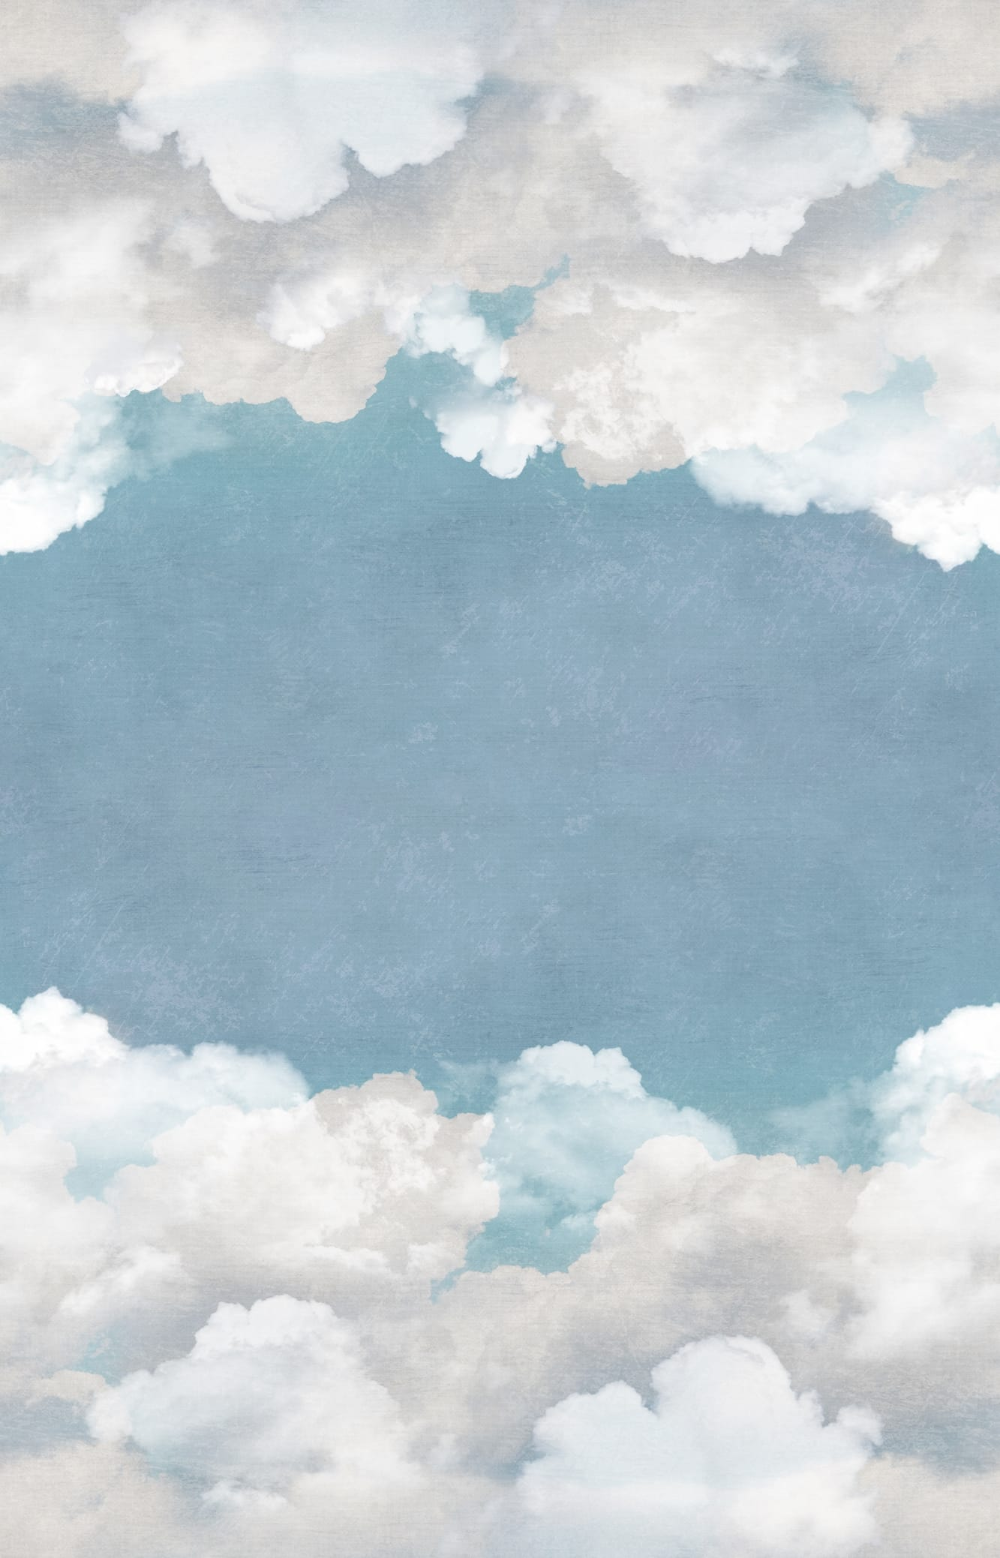 Open up the ceiling and fly away among the clouds. Let the air inside for a free mind.